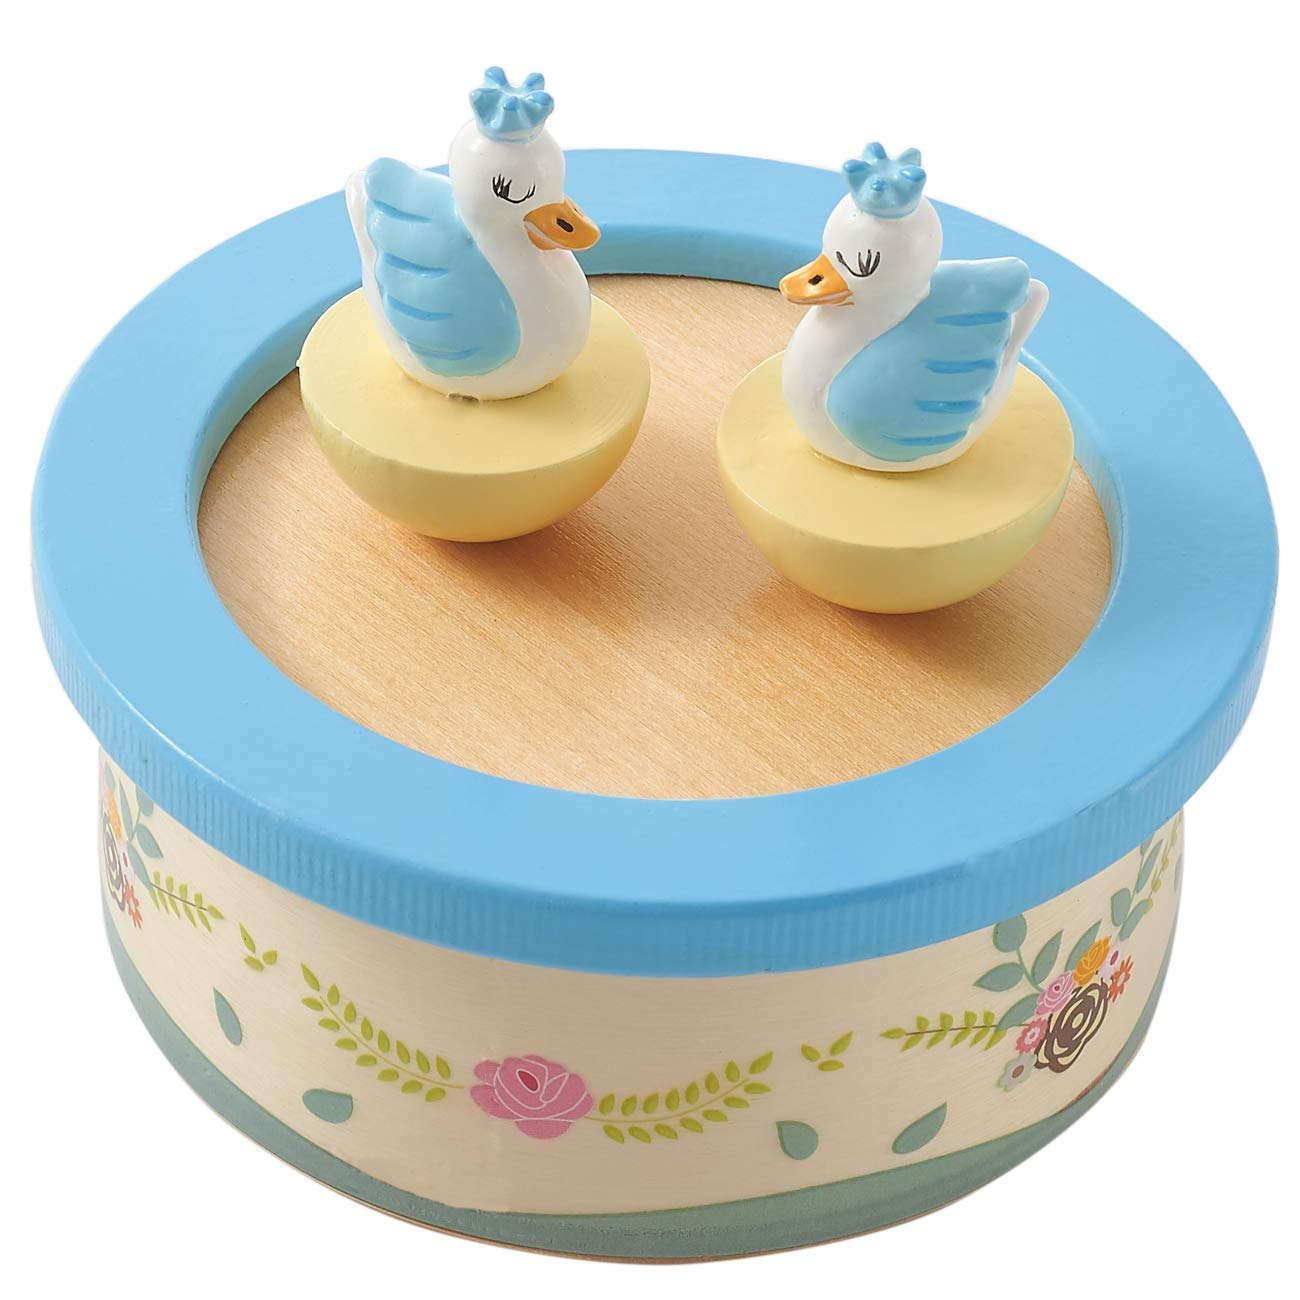 Image of Cute Swan Lake Wooden Music Box for Kids - Available in Pink or Blue